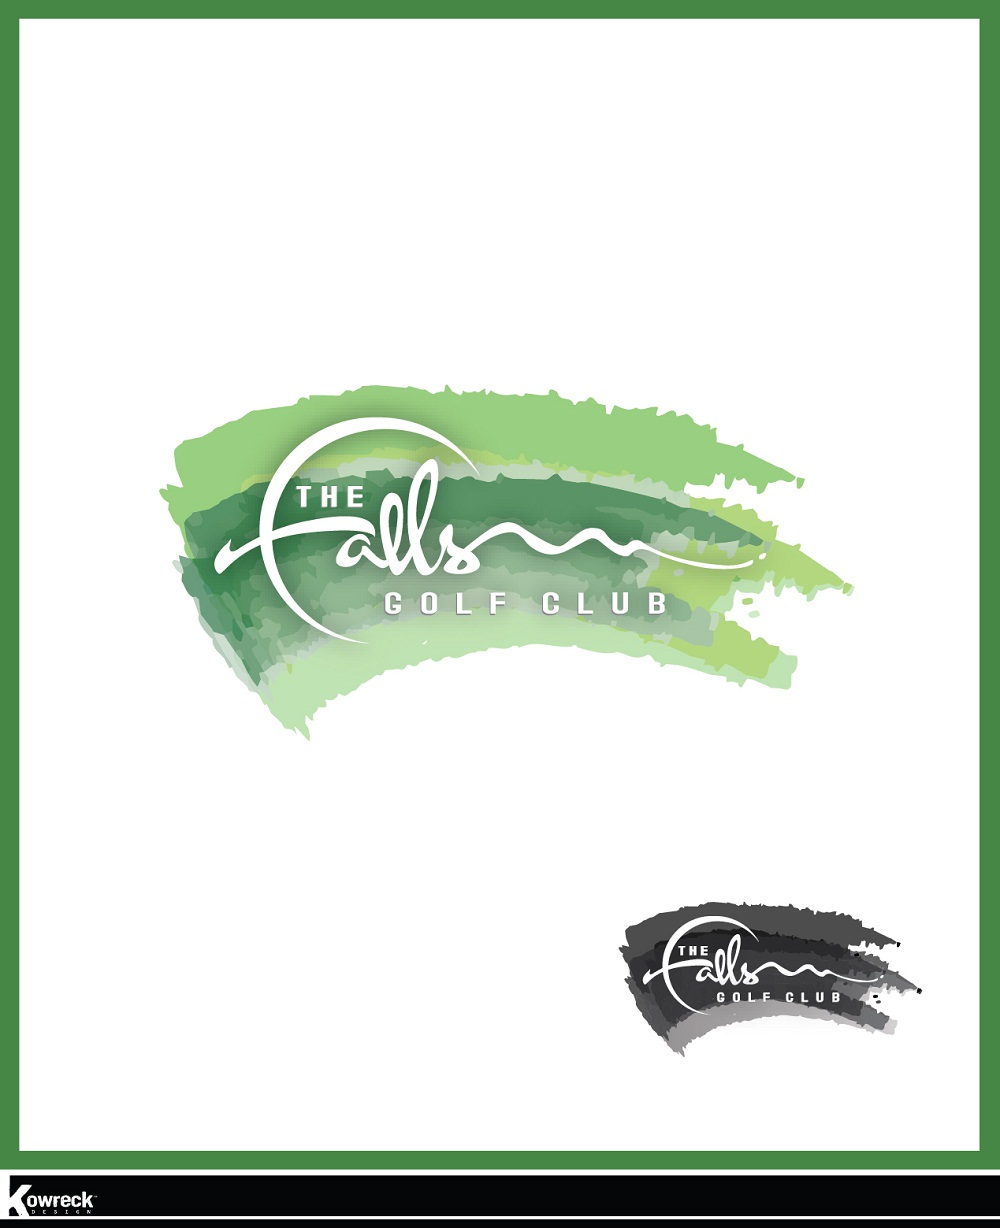 Logo Design by kowreck - Entry No. 52 in the Logo Design Contest The Falls Golf Club Logo Design.